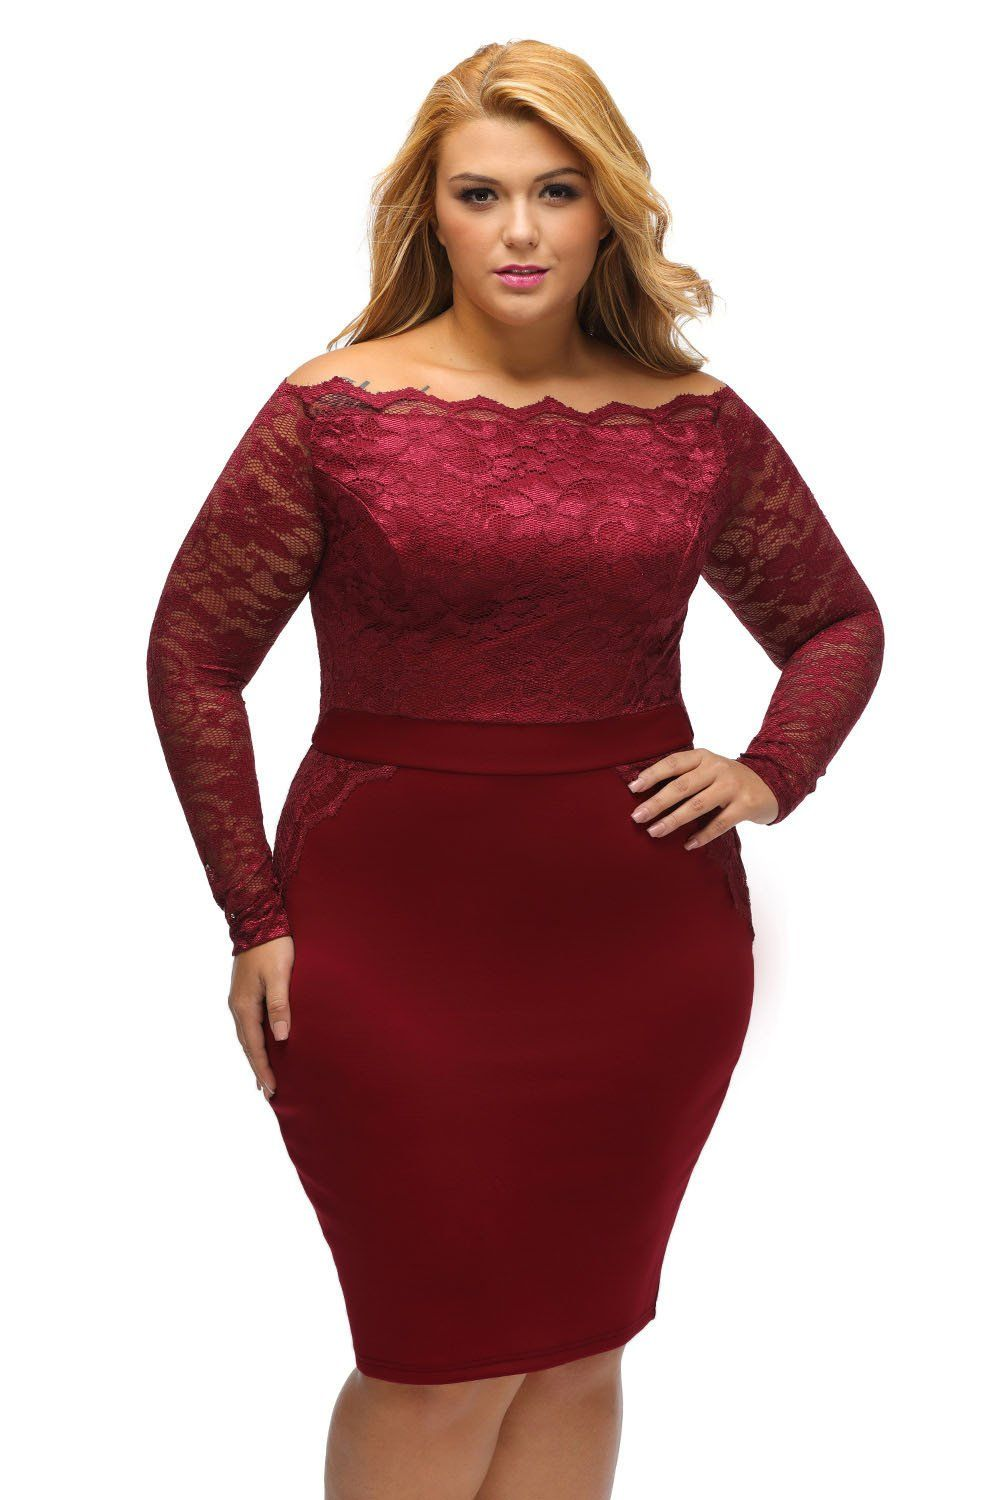 Red Off Shoulder Long Sleeve Plus Size Lace Dress Chiclike Com Off Shoulder Lace Dress Lace Dress Plus Size Lace Dress [ 1500 x 1001 Pixel ]